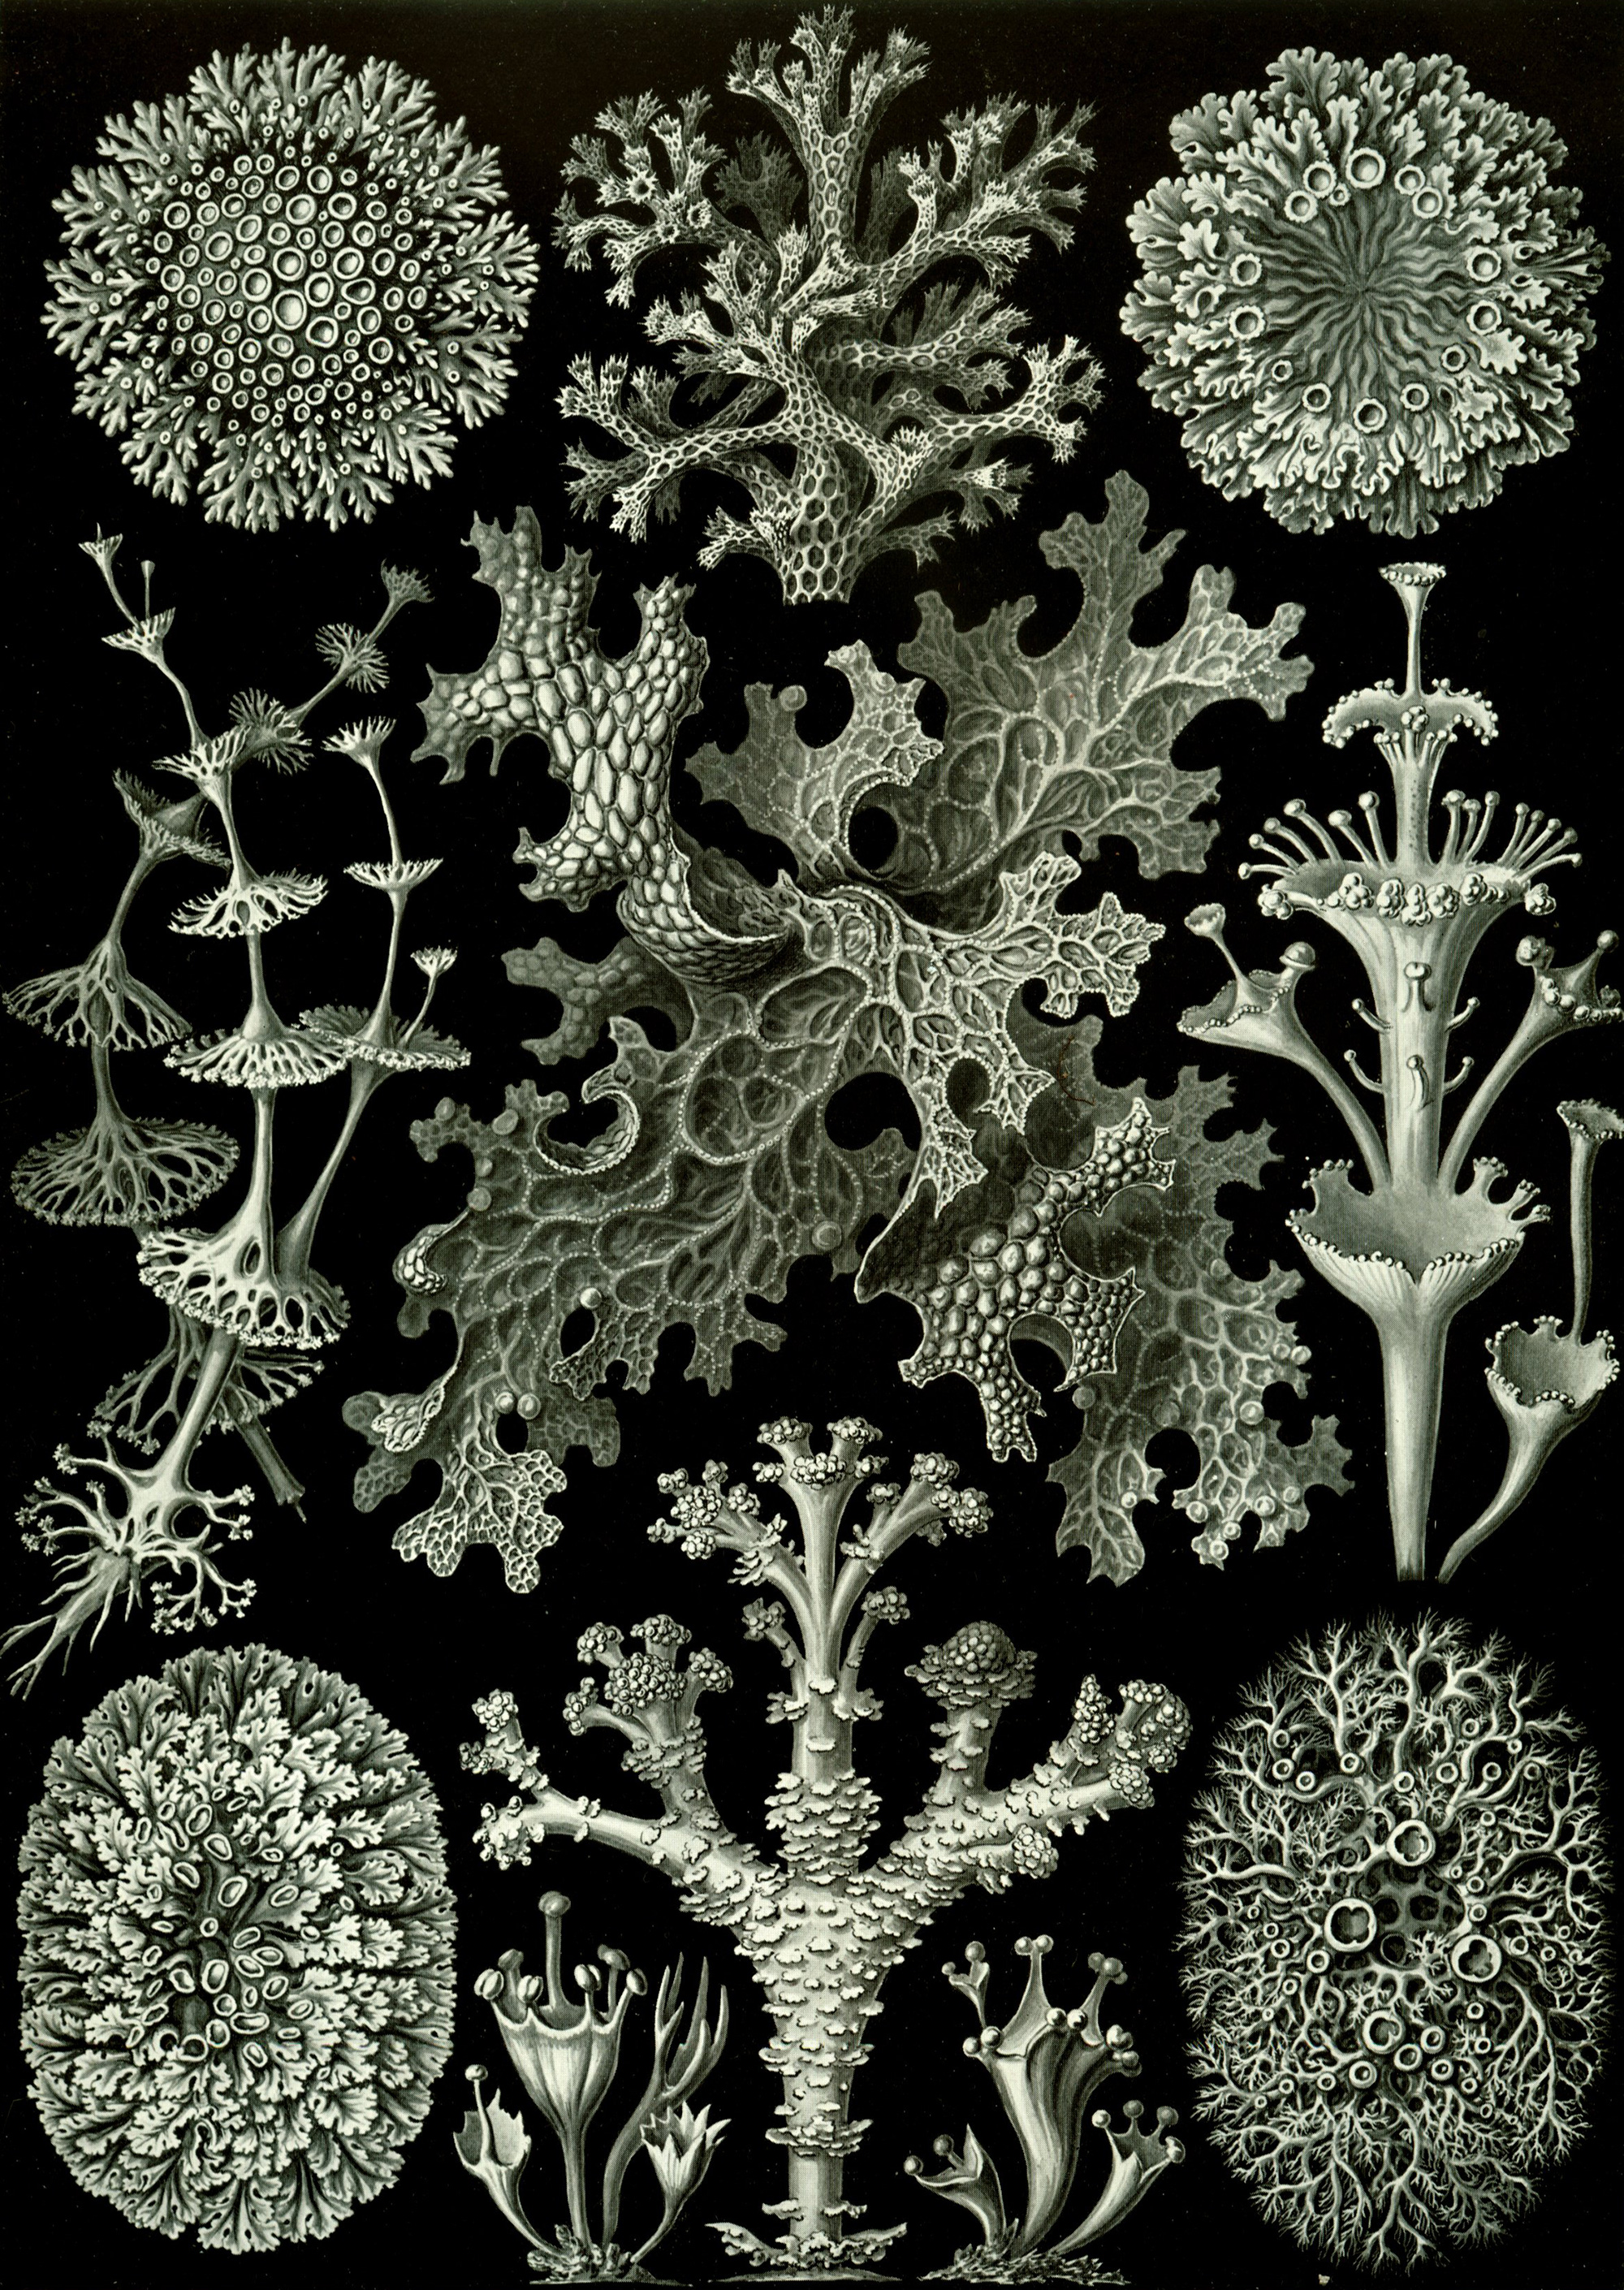 Art Forms in Nature, Plate 83: Lichenes, 1904 — Ernst Haeckel,